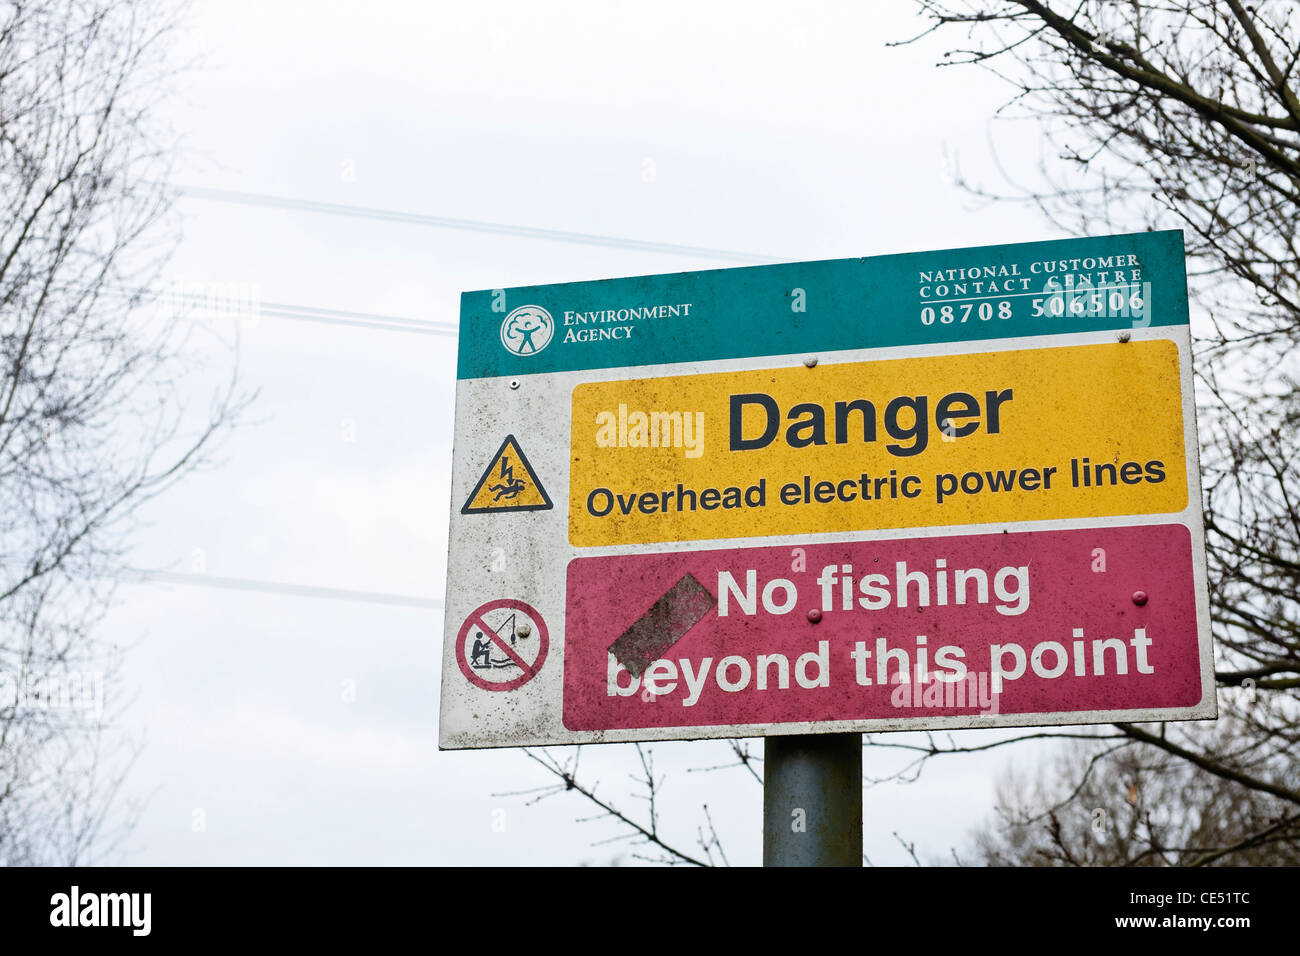 A sign telling fishermen not to fish due to the danger of overhead electric cables. - Stock Image